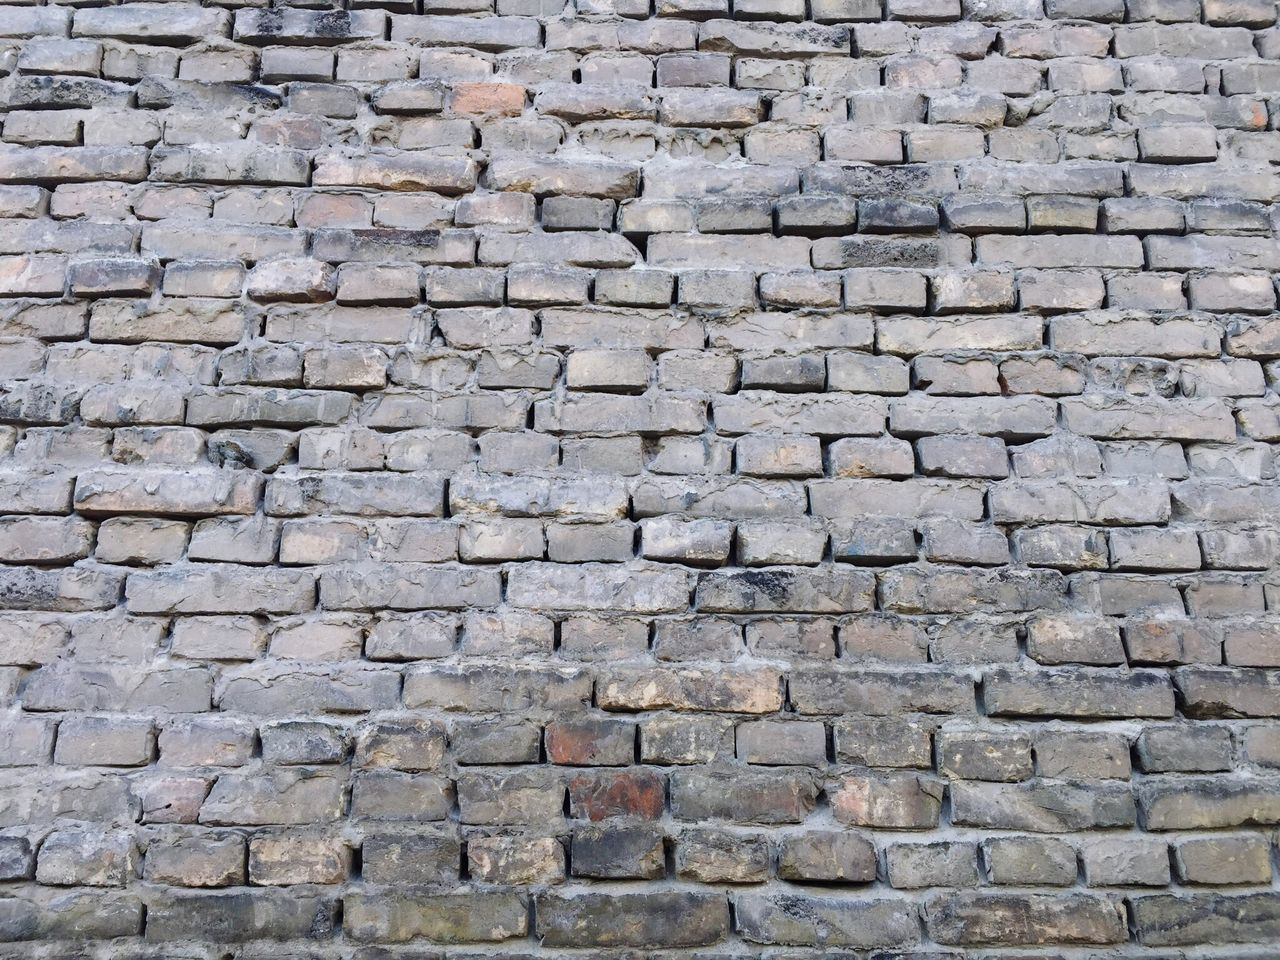 Brick Wall Patern Wall Industrial Backroads Cracked Backgrounds Stone Wall Outdoors Day No People Architecture